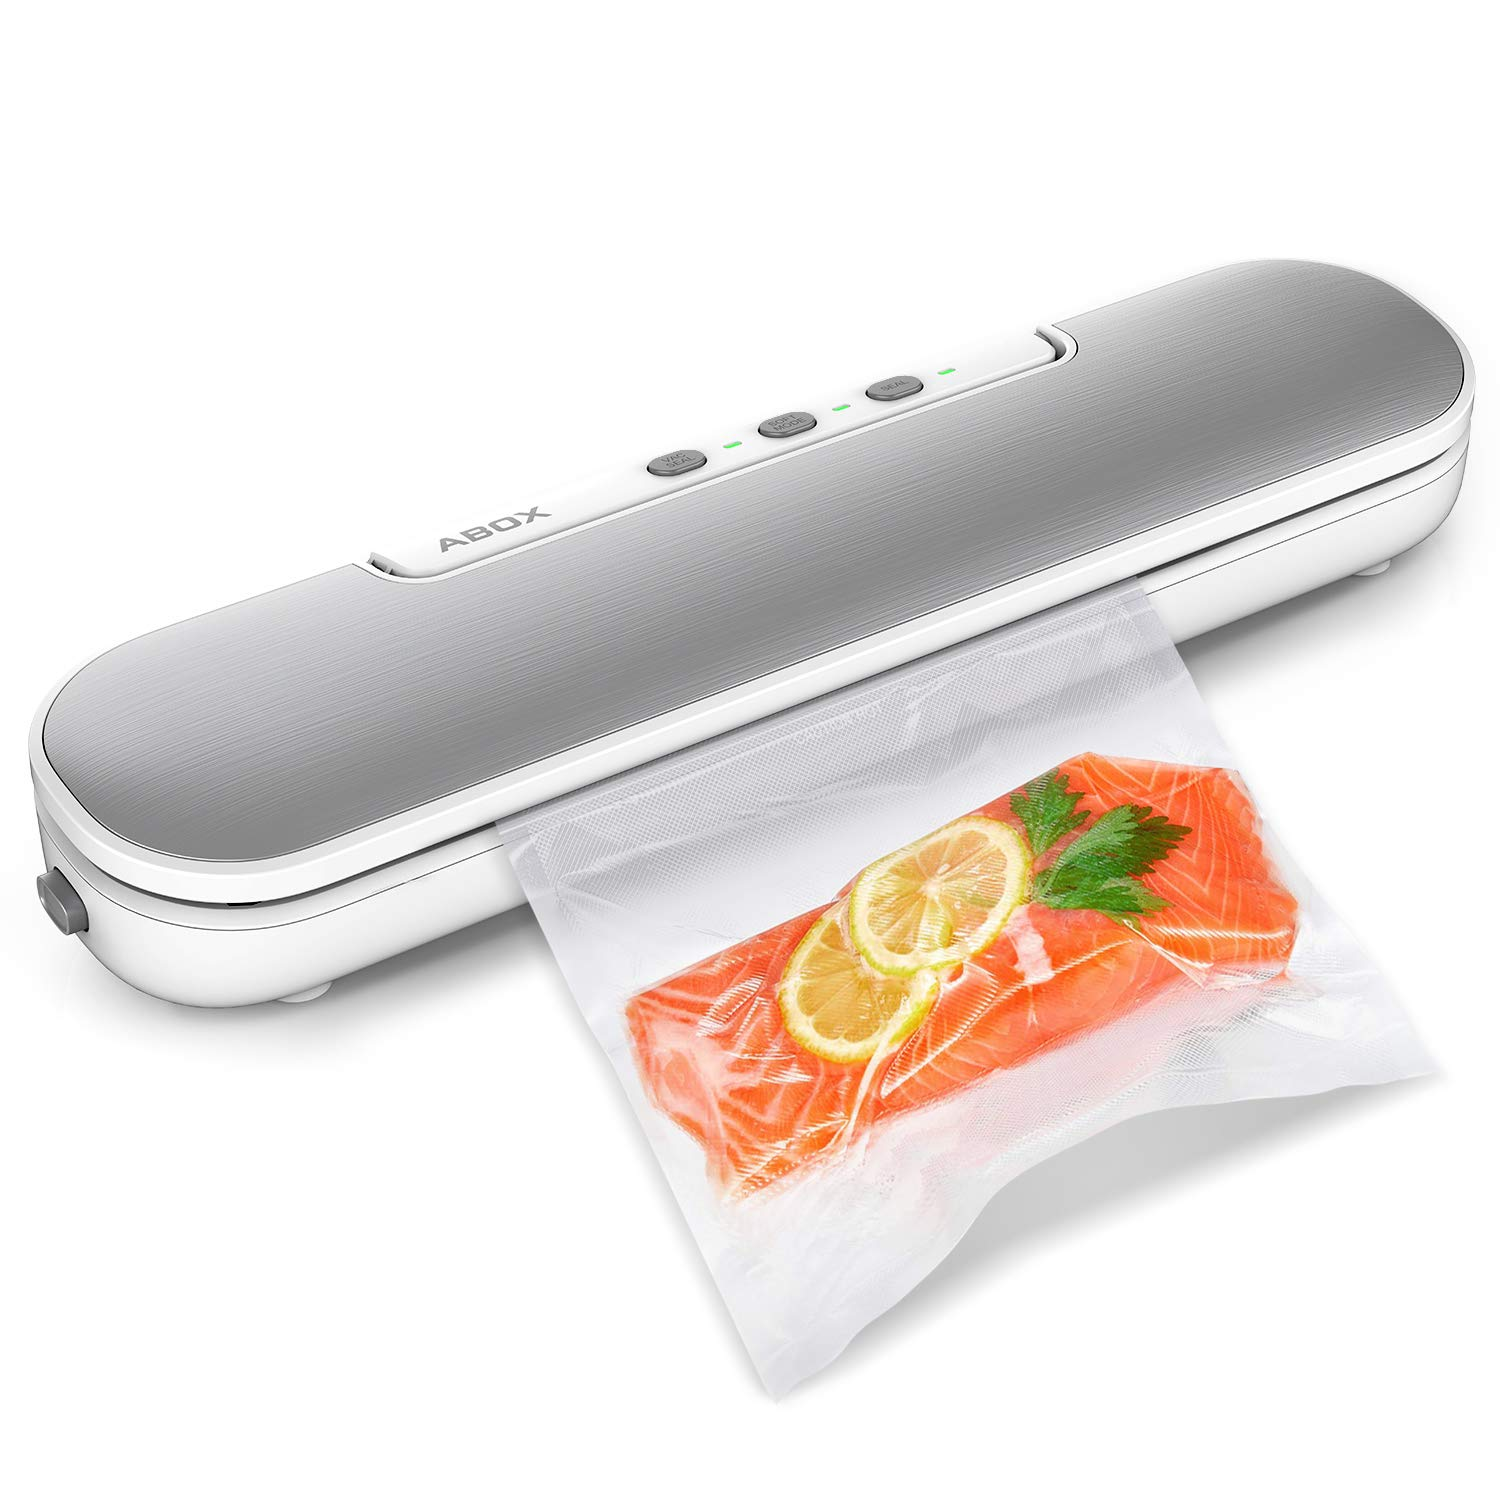 Vacuum Sealer Machine, ABOX V69 Portable Food Vacuum Air Sealing System for Food Saver Storage, Compact Design with Magnets and 10 Bags by ABOX